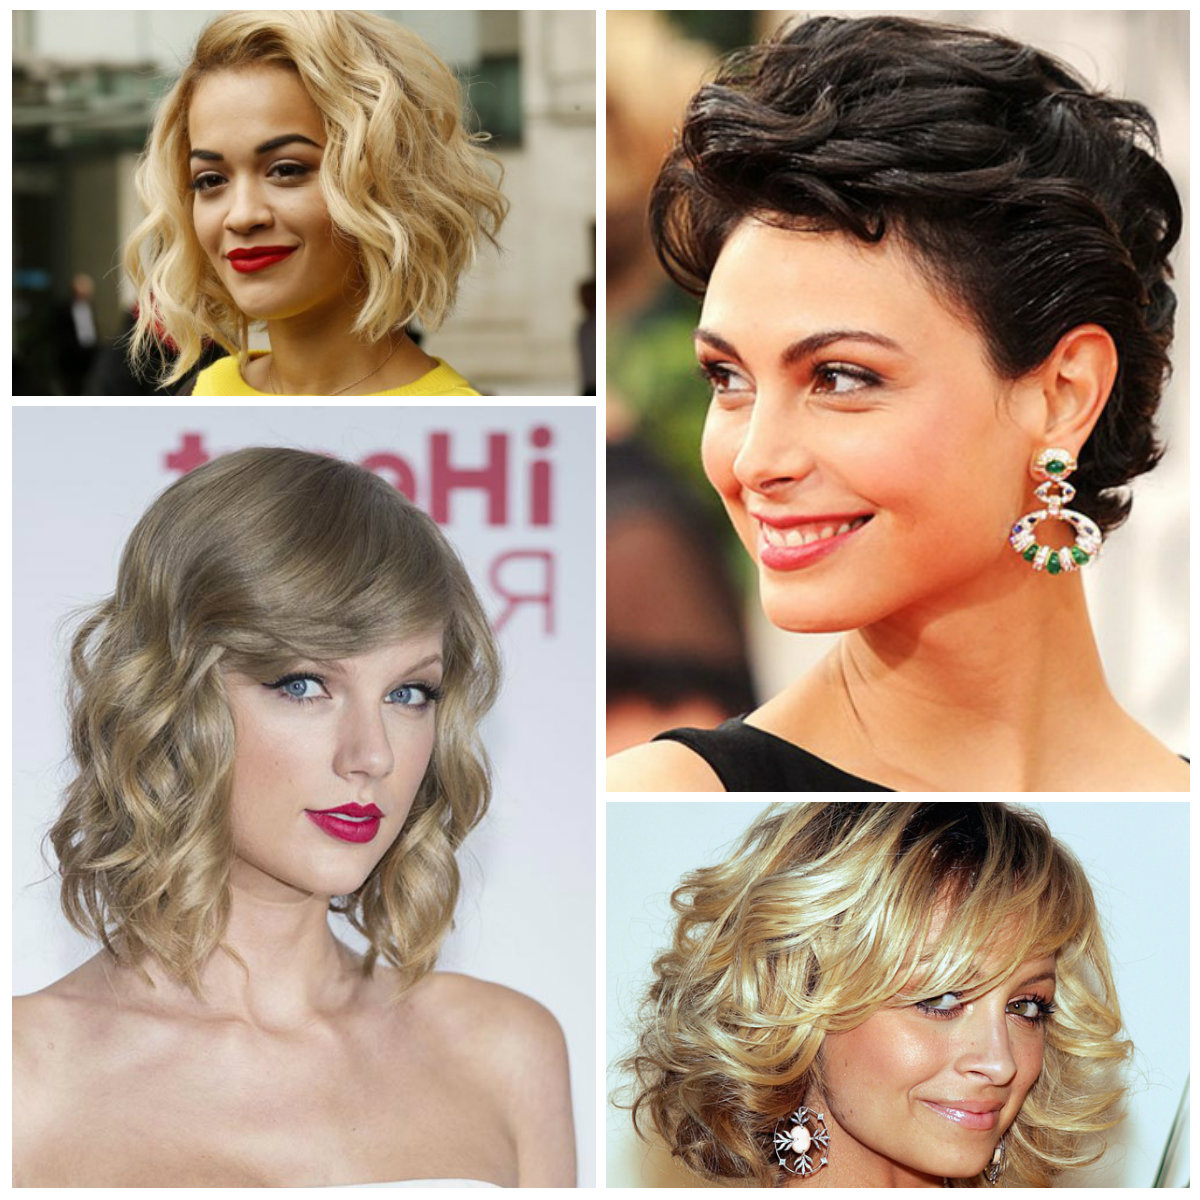 Curly Hairstyles | Hairstyles For Women 2019, Haircuts For Long Intended For Trendy Short Curly Haircuts (View 15 of 25)